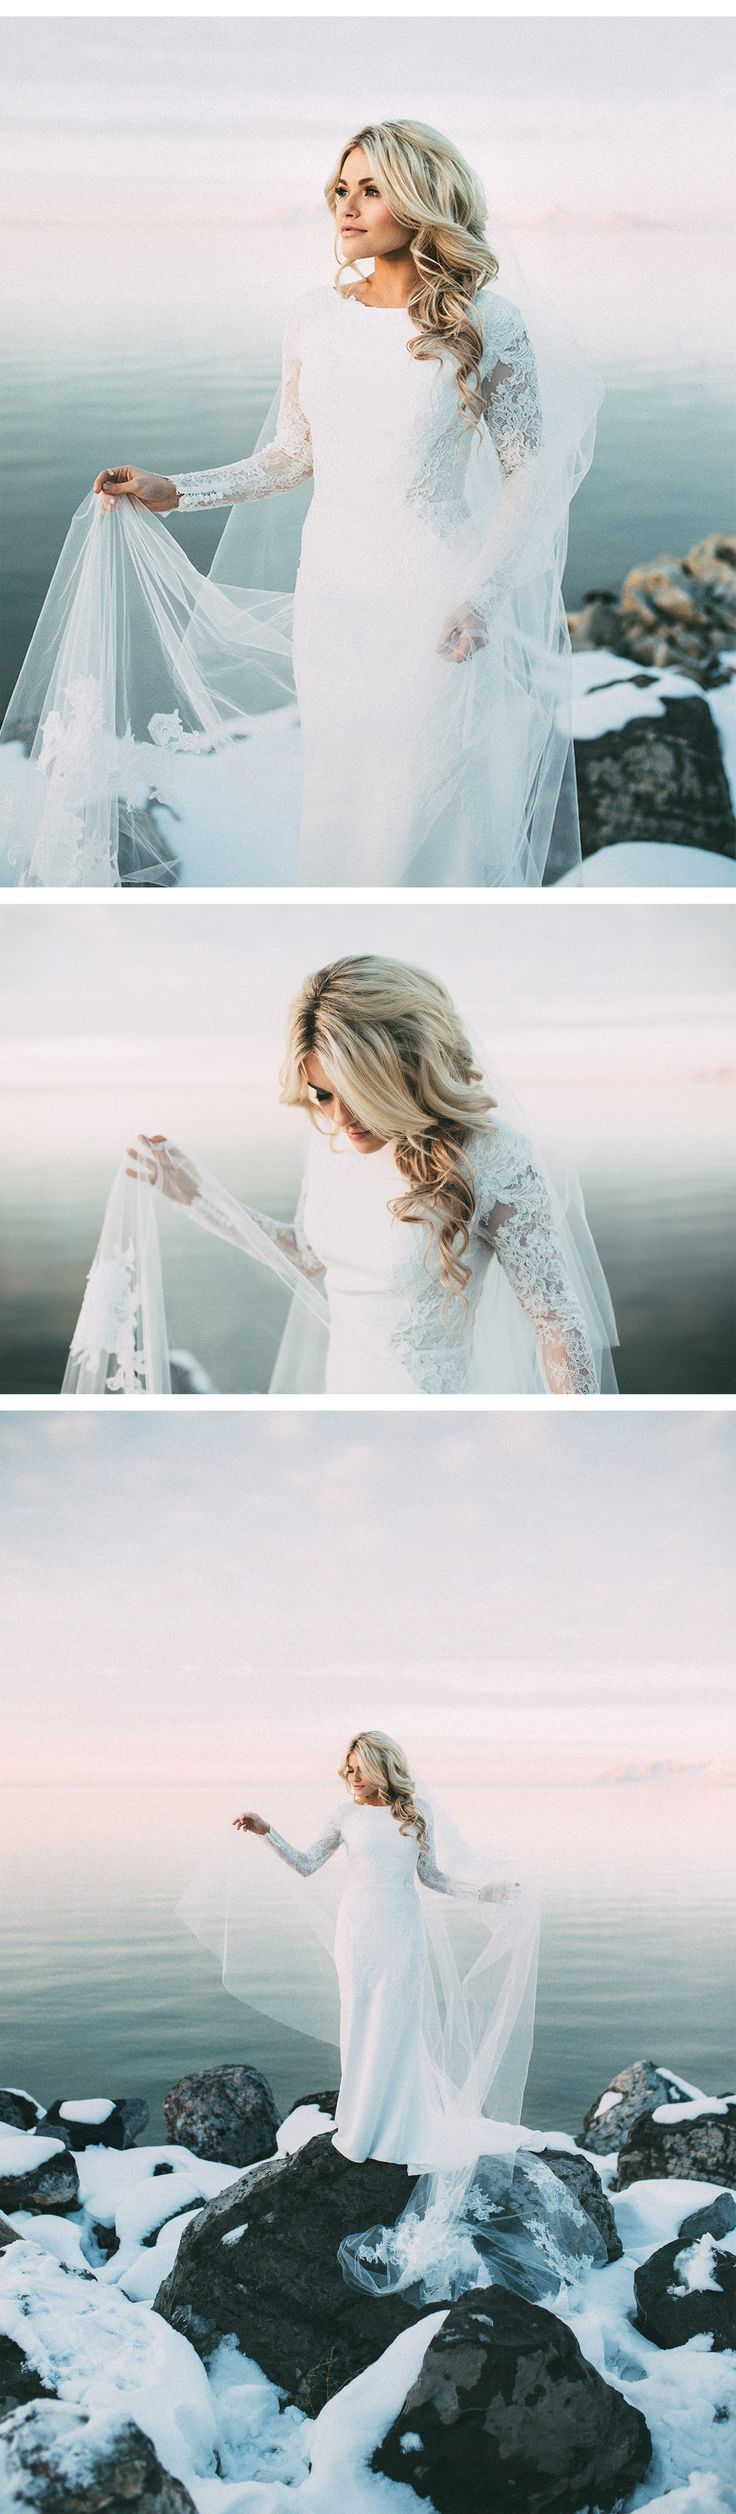 Our muse winter wonderland in salt lake city wedding for Salt lake city wedding dresses